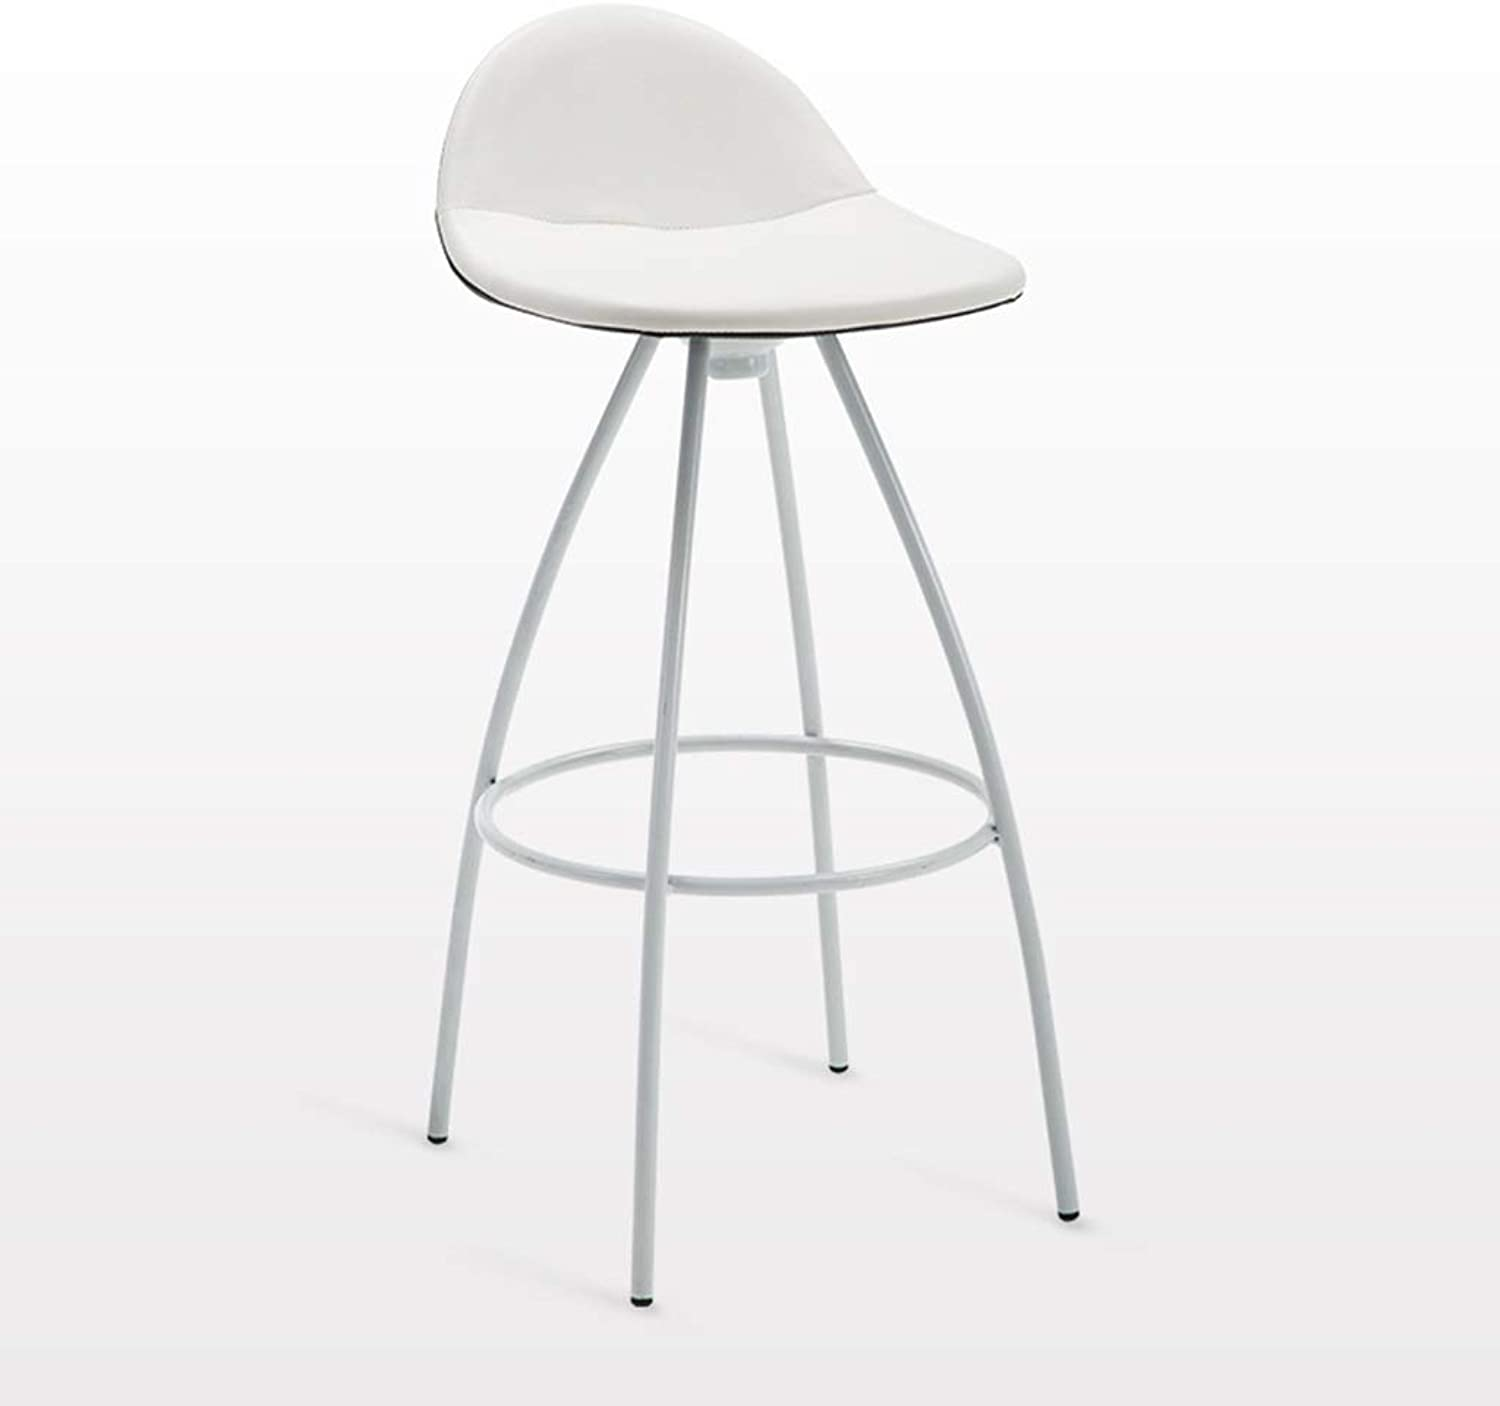 Casual Bar Chair, Metal PU Seat Surface Bar Stool Cocktail Party Party Bar Stool Breakfast Bar Counter High Stool Height 85CM (color   Pure White)